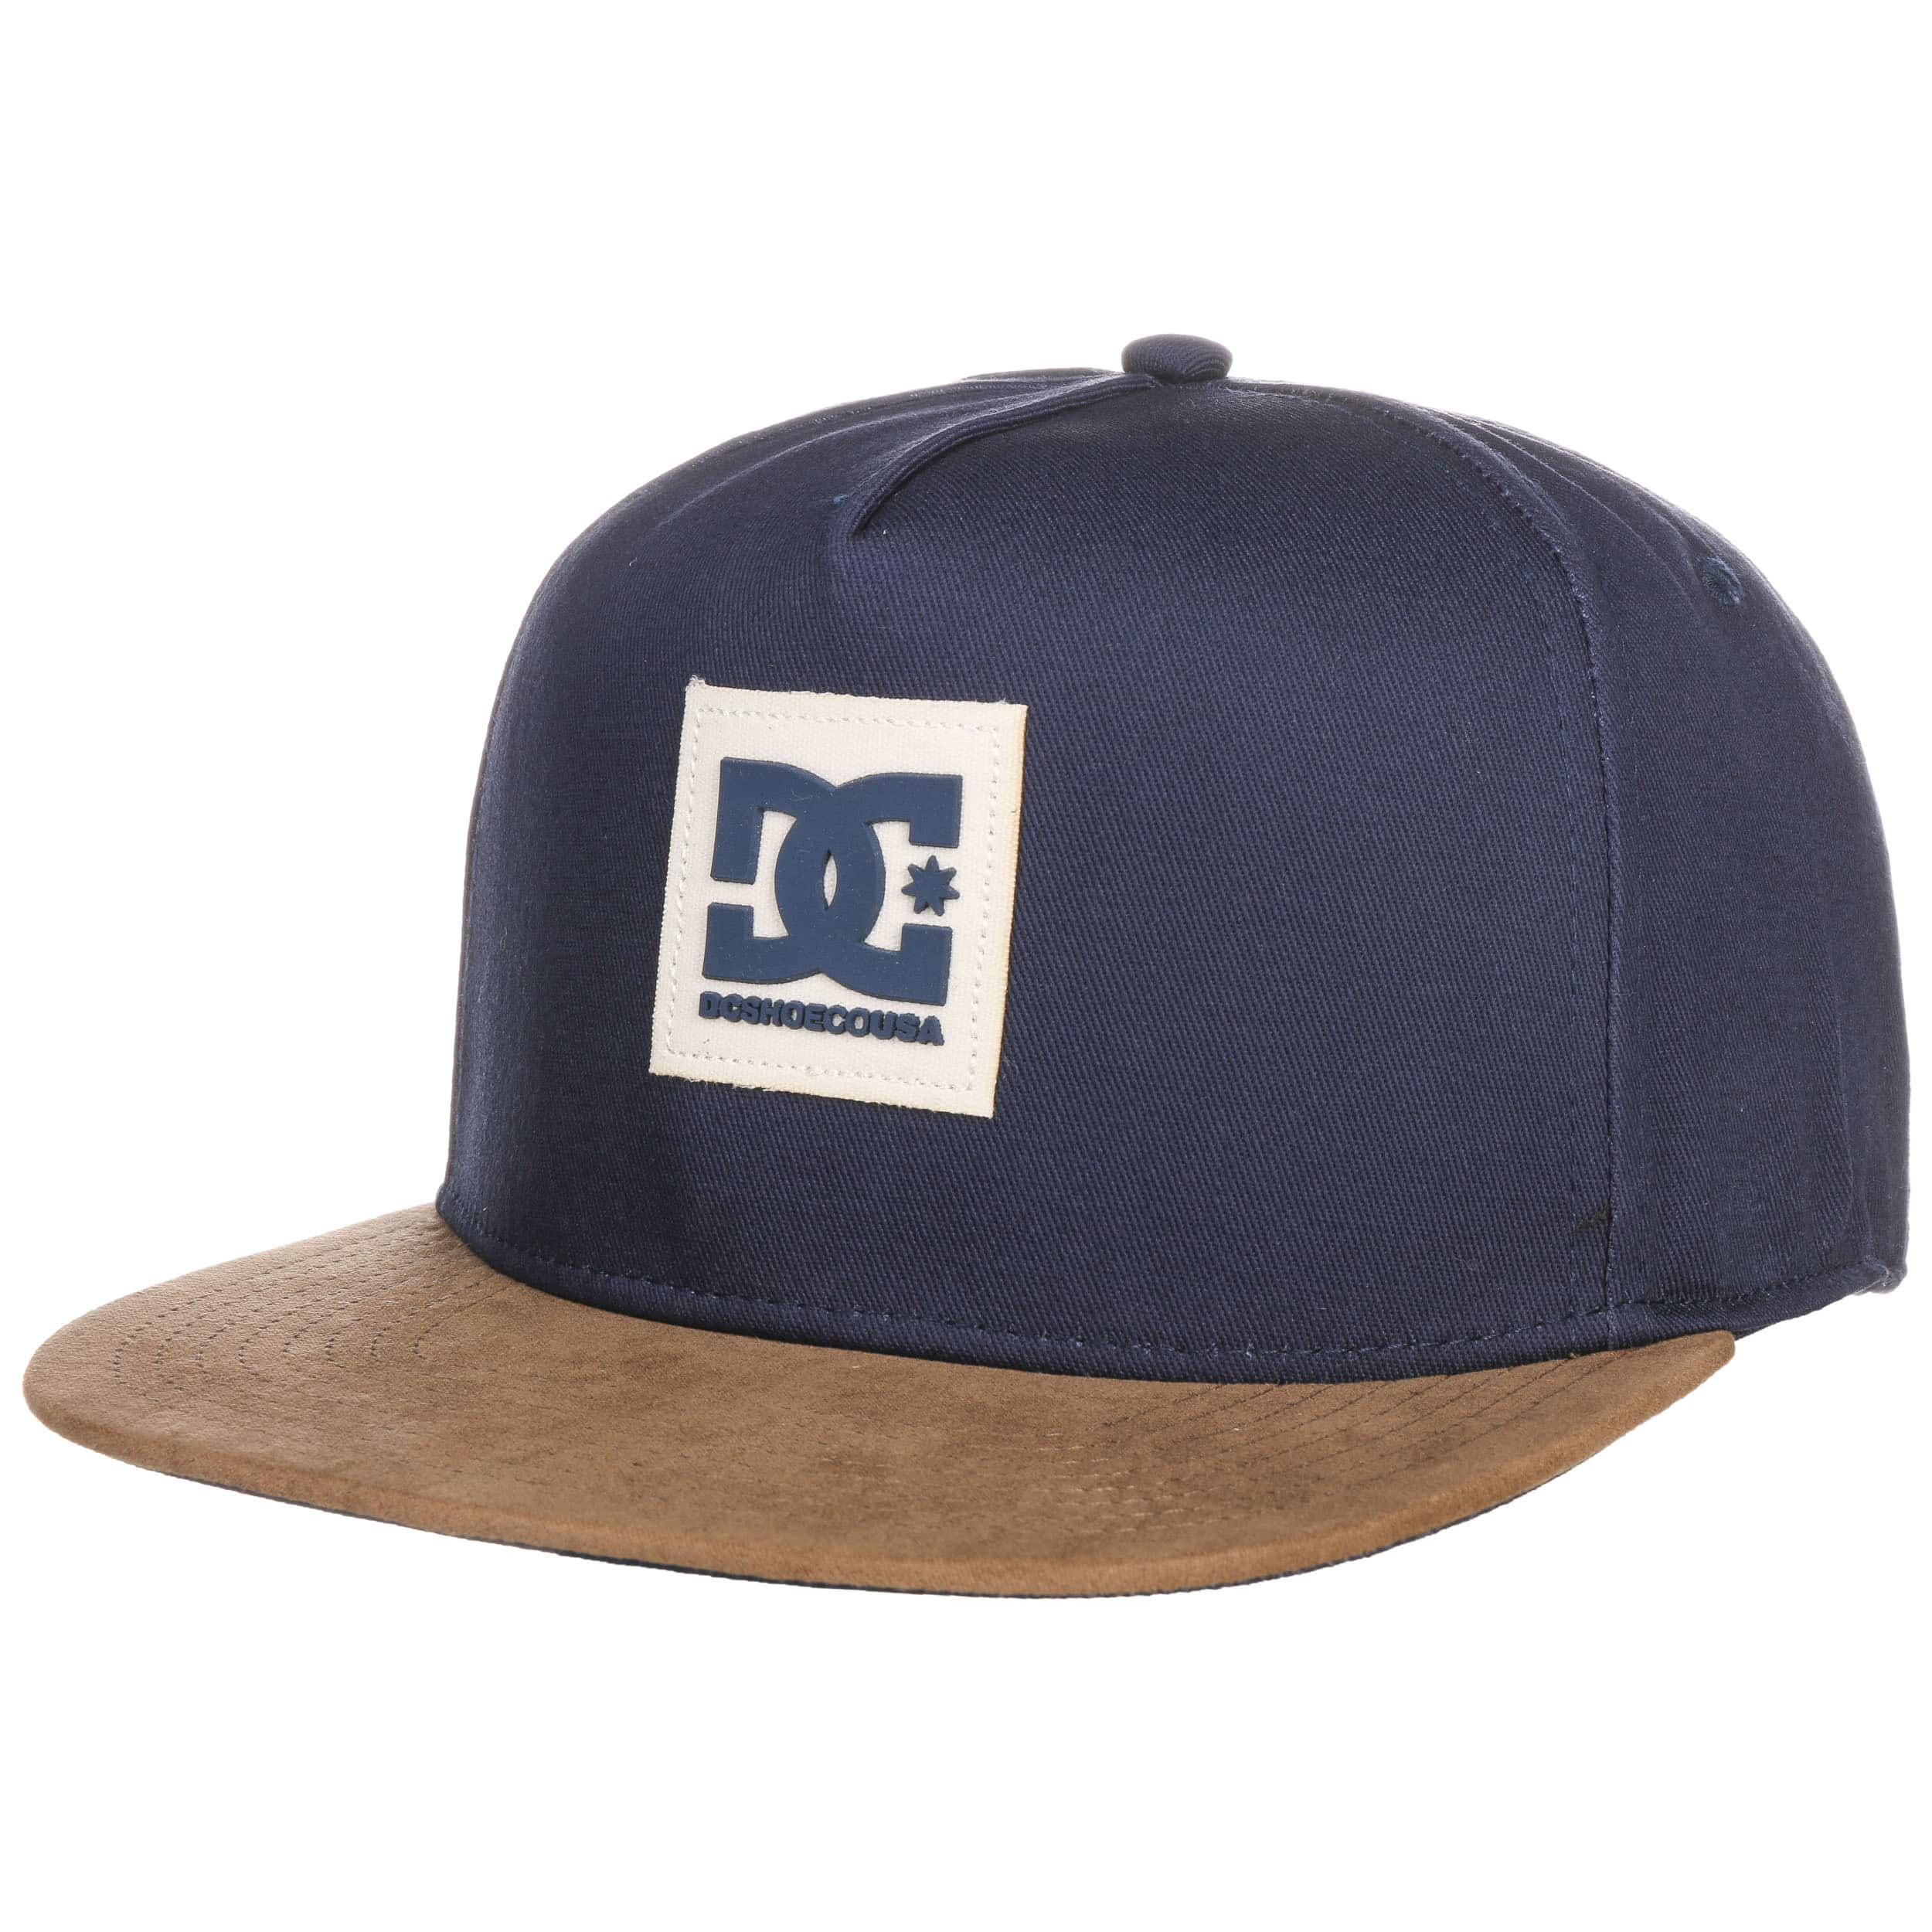 ... Dacks Snapback Cap by DC Shoes Co - navy 5 ... e9a48ef4fd2